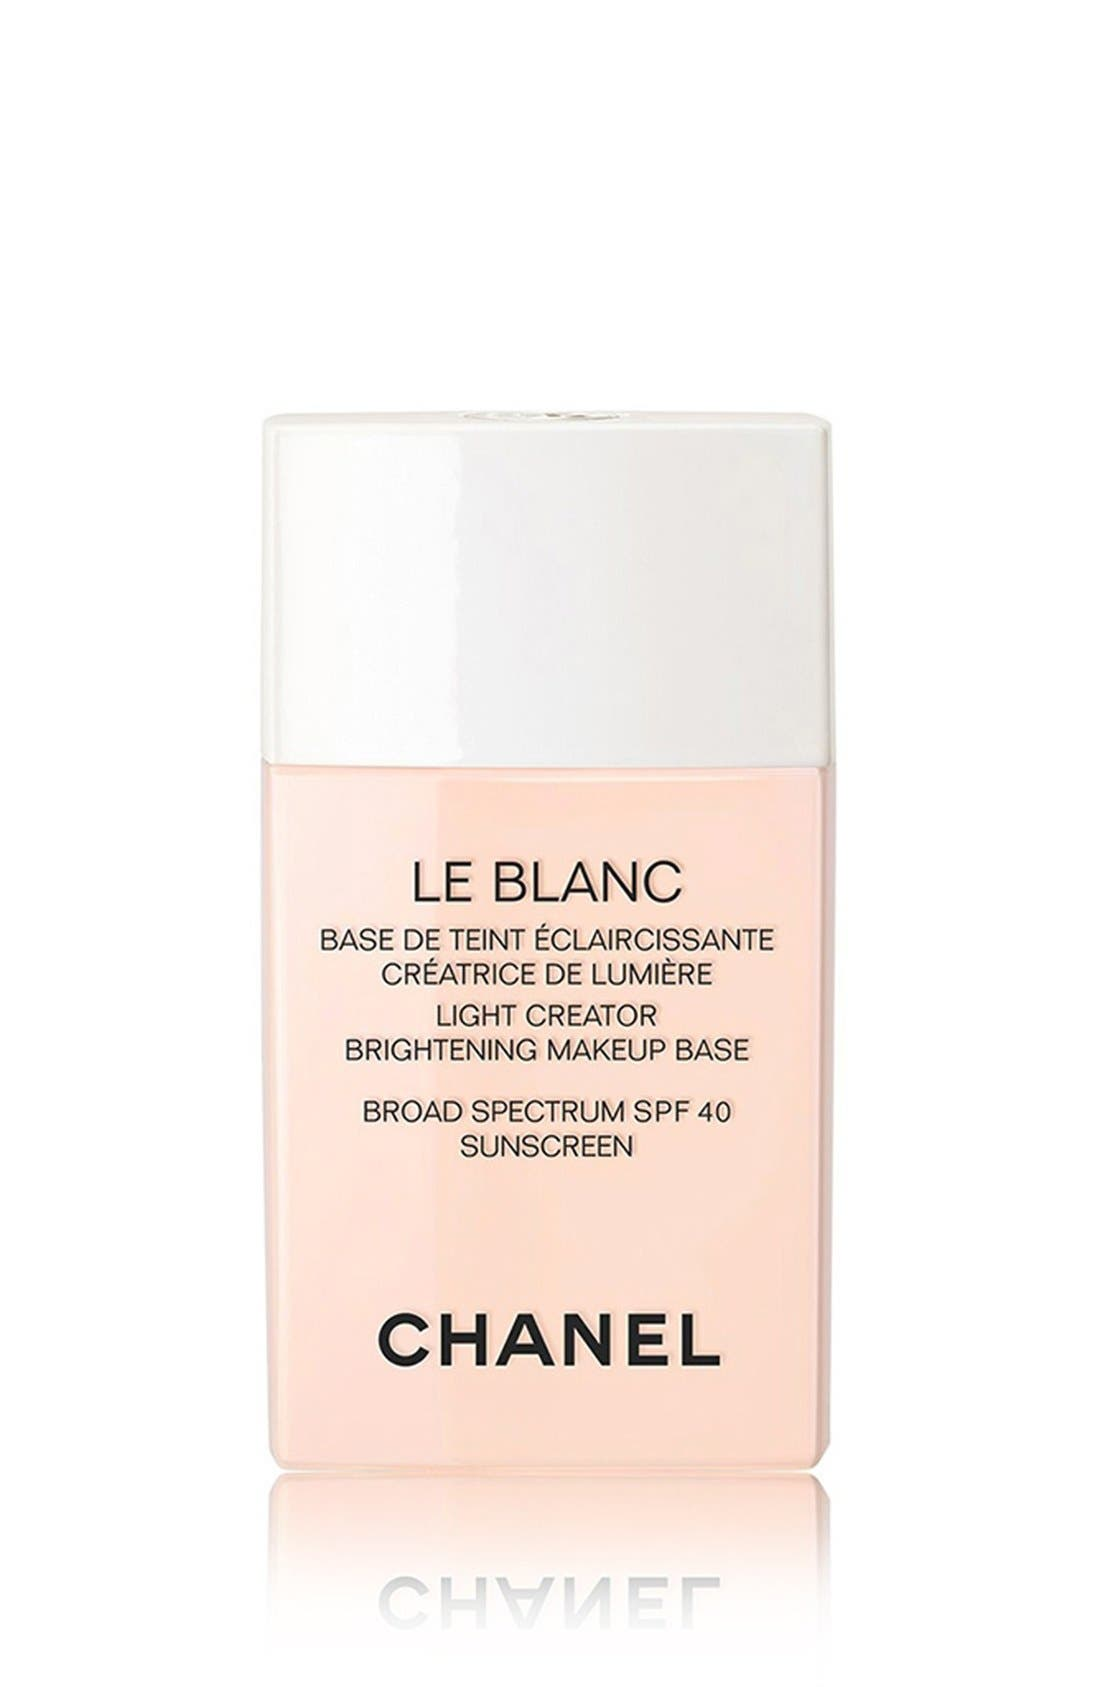 CHANEL LE BLANC LIGHT CREATOR 